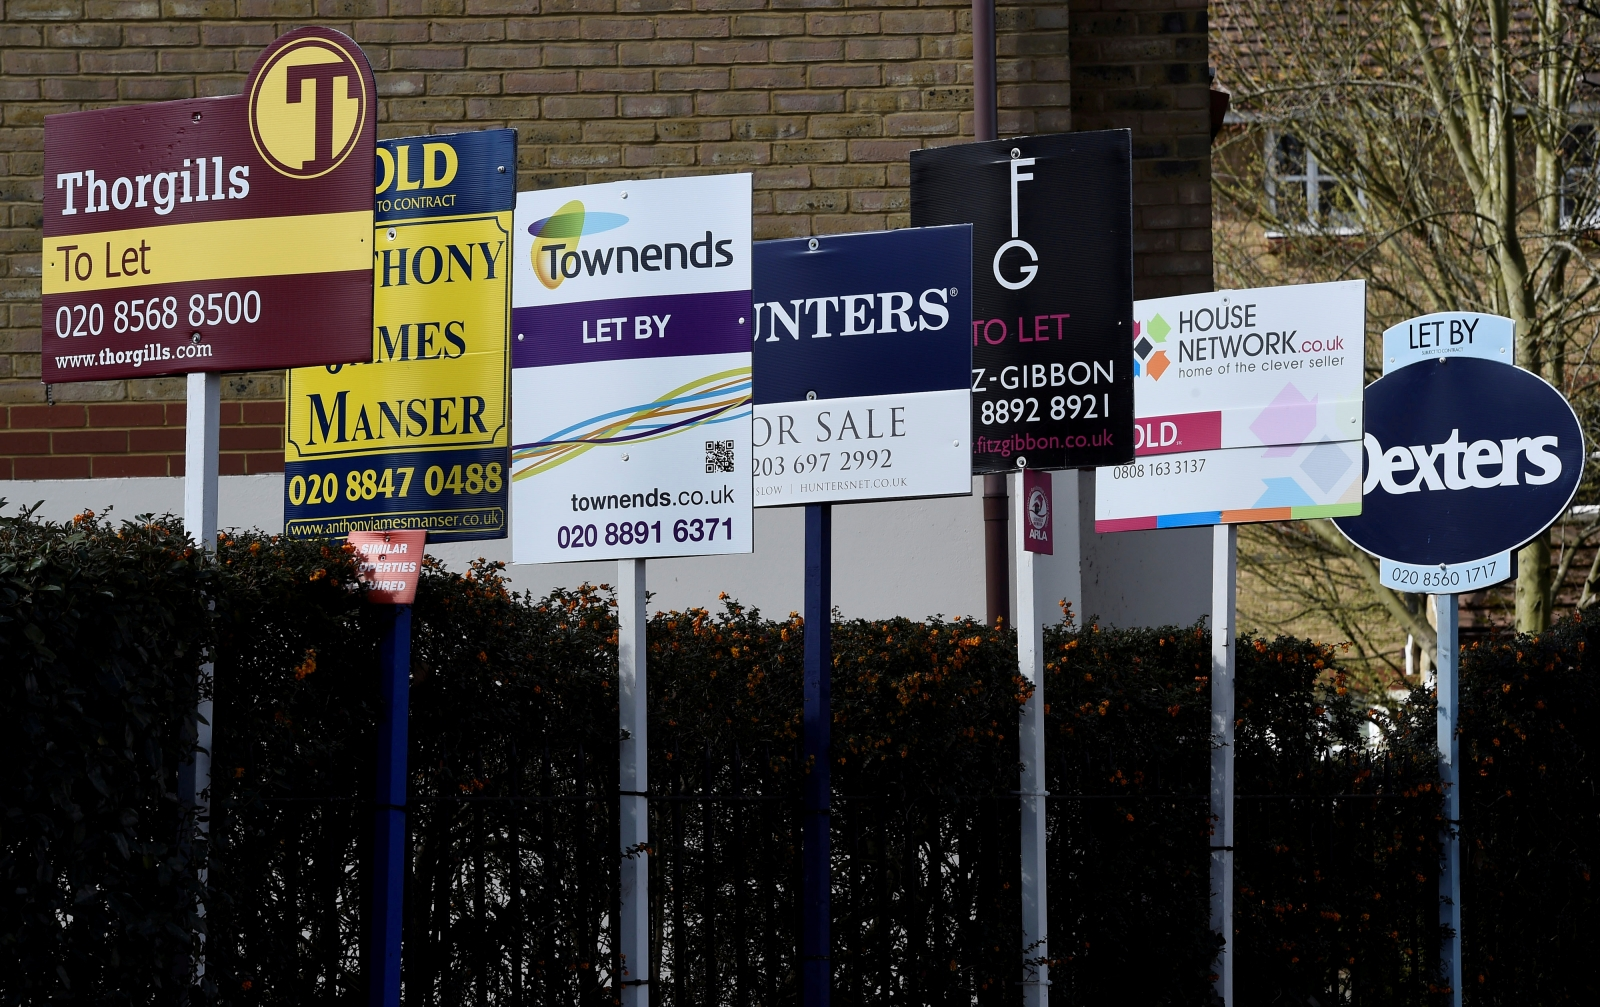 London house prices post biggest annual decline in 8 years in April